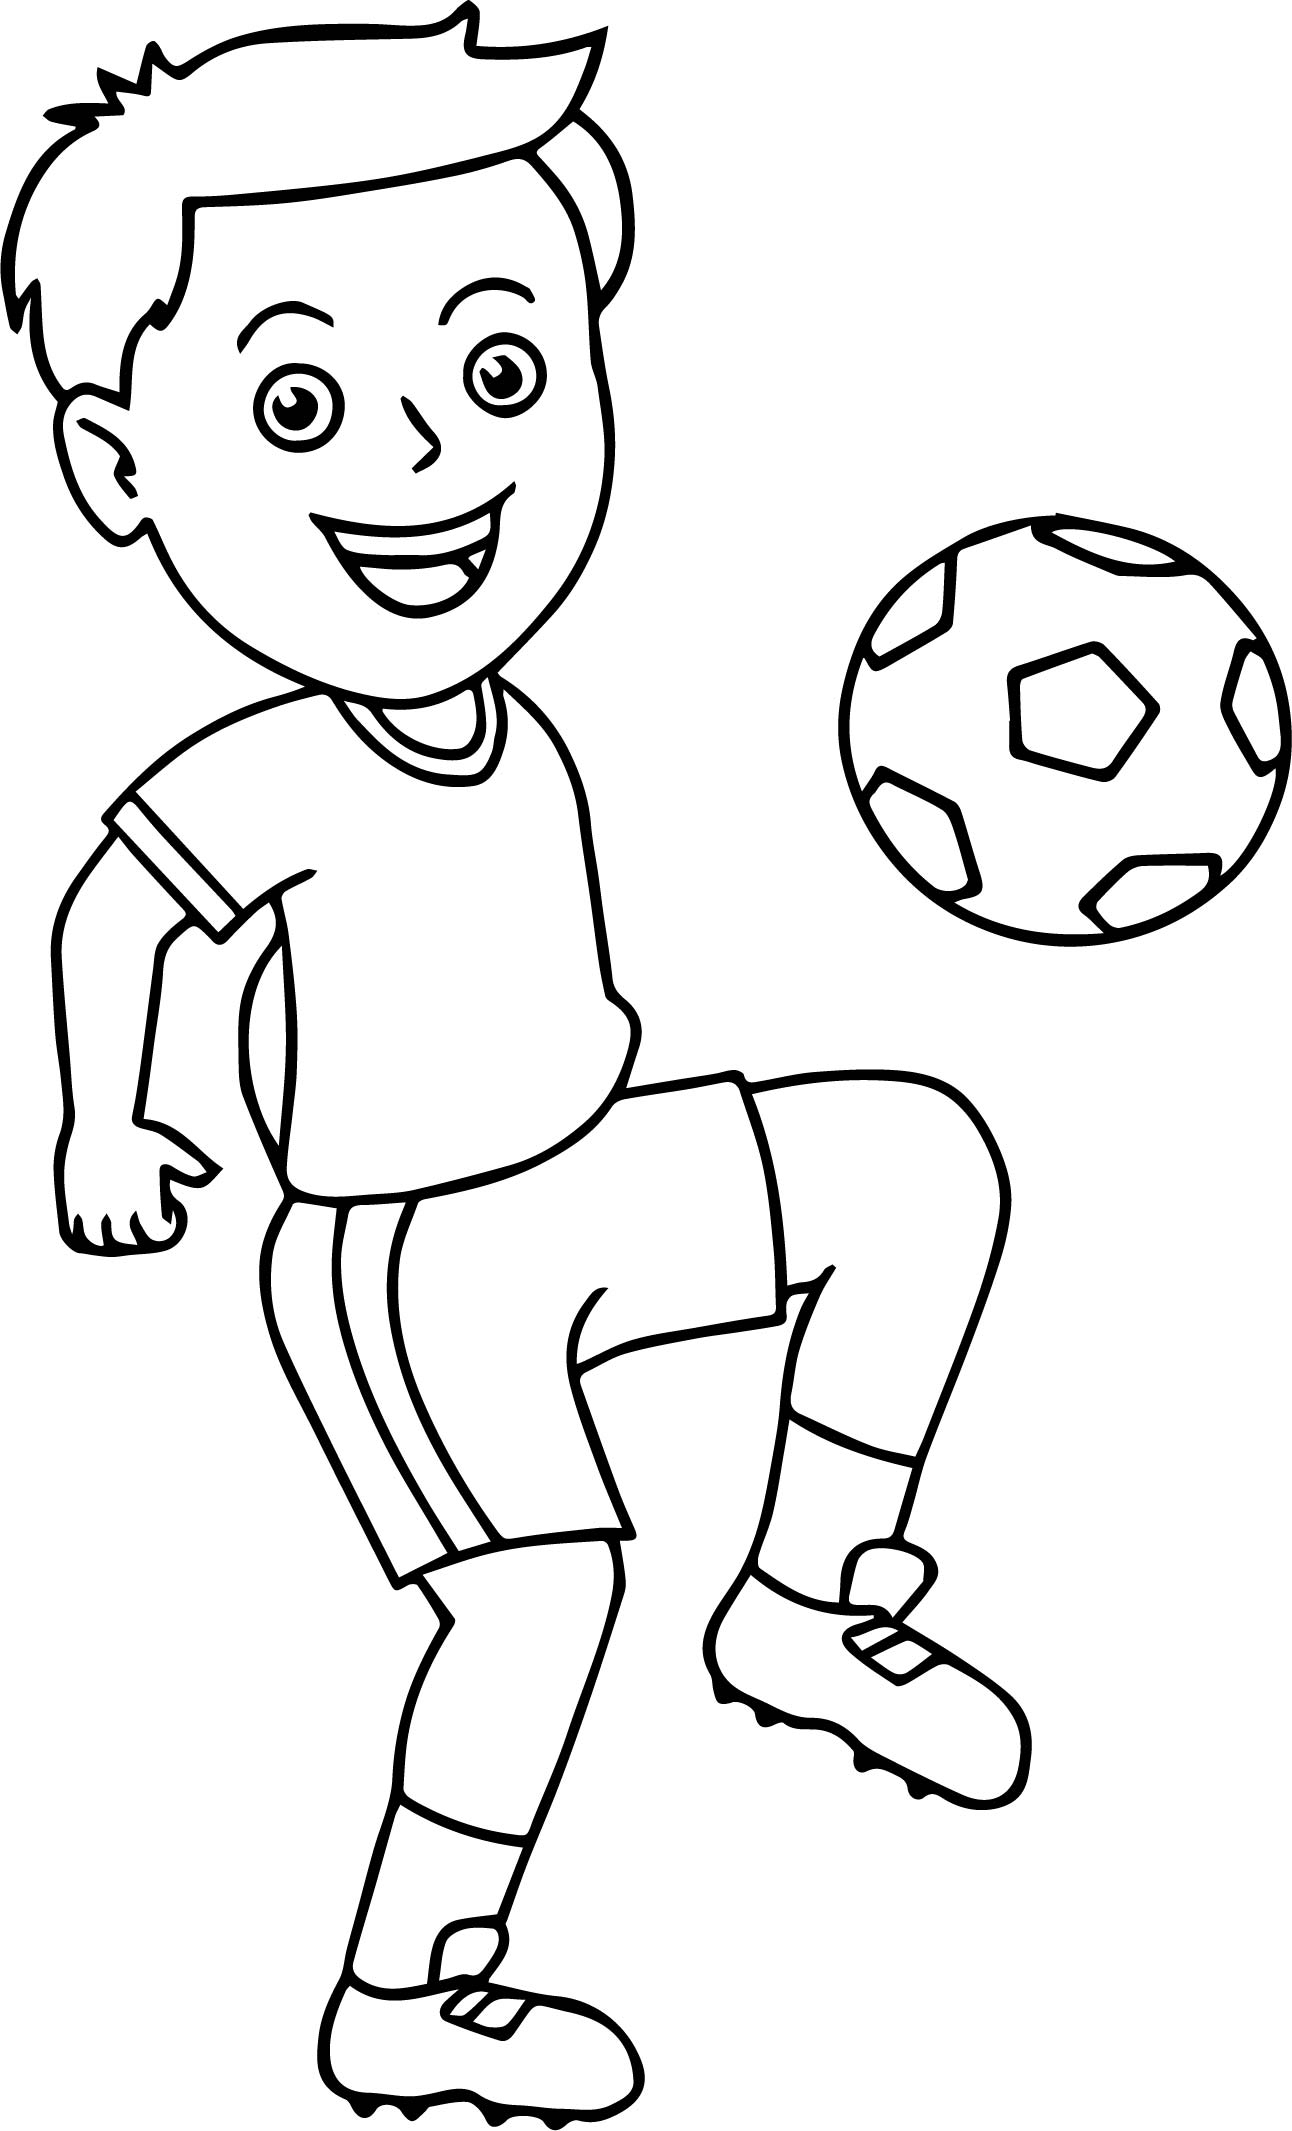 Ball Coloring Pages - soccer Boy Bouncing soccer Ball His Knee Playing